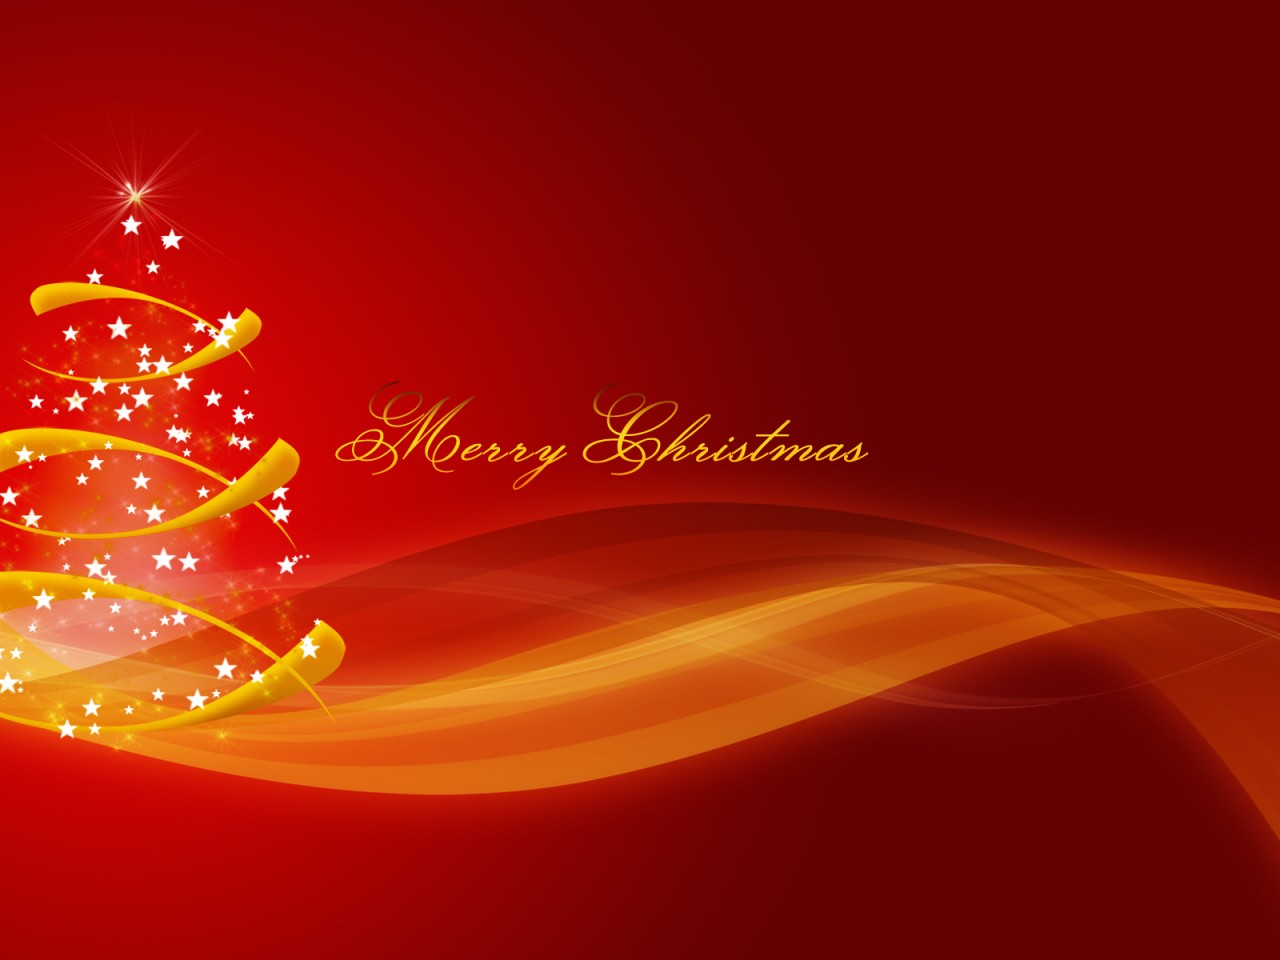 Simple Merry Christmas Wallpaper Hd Wallpapers